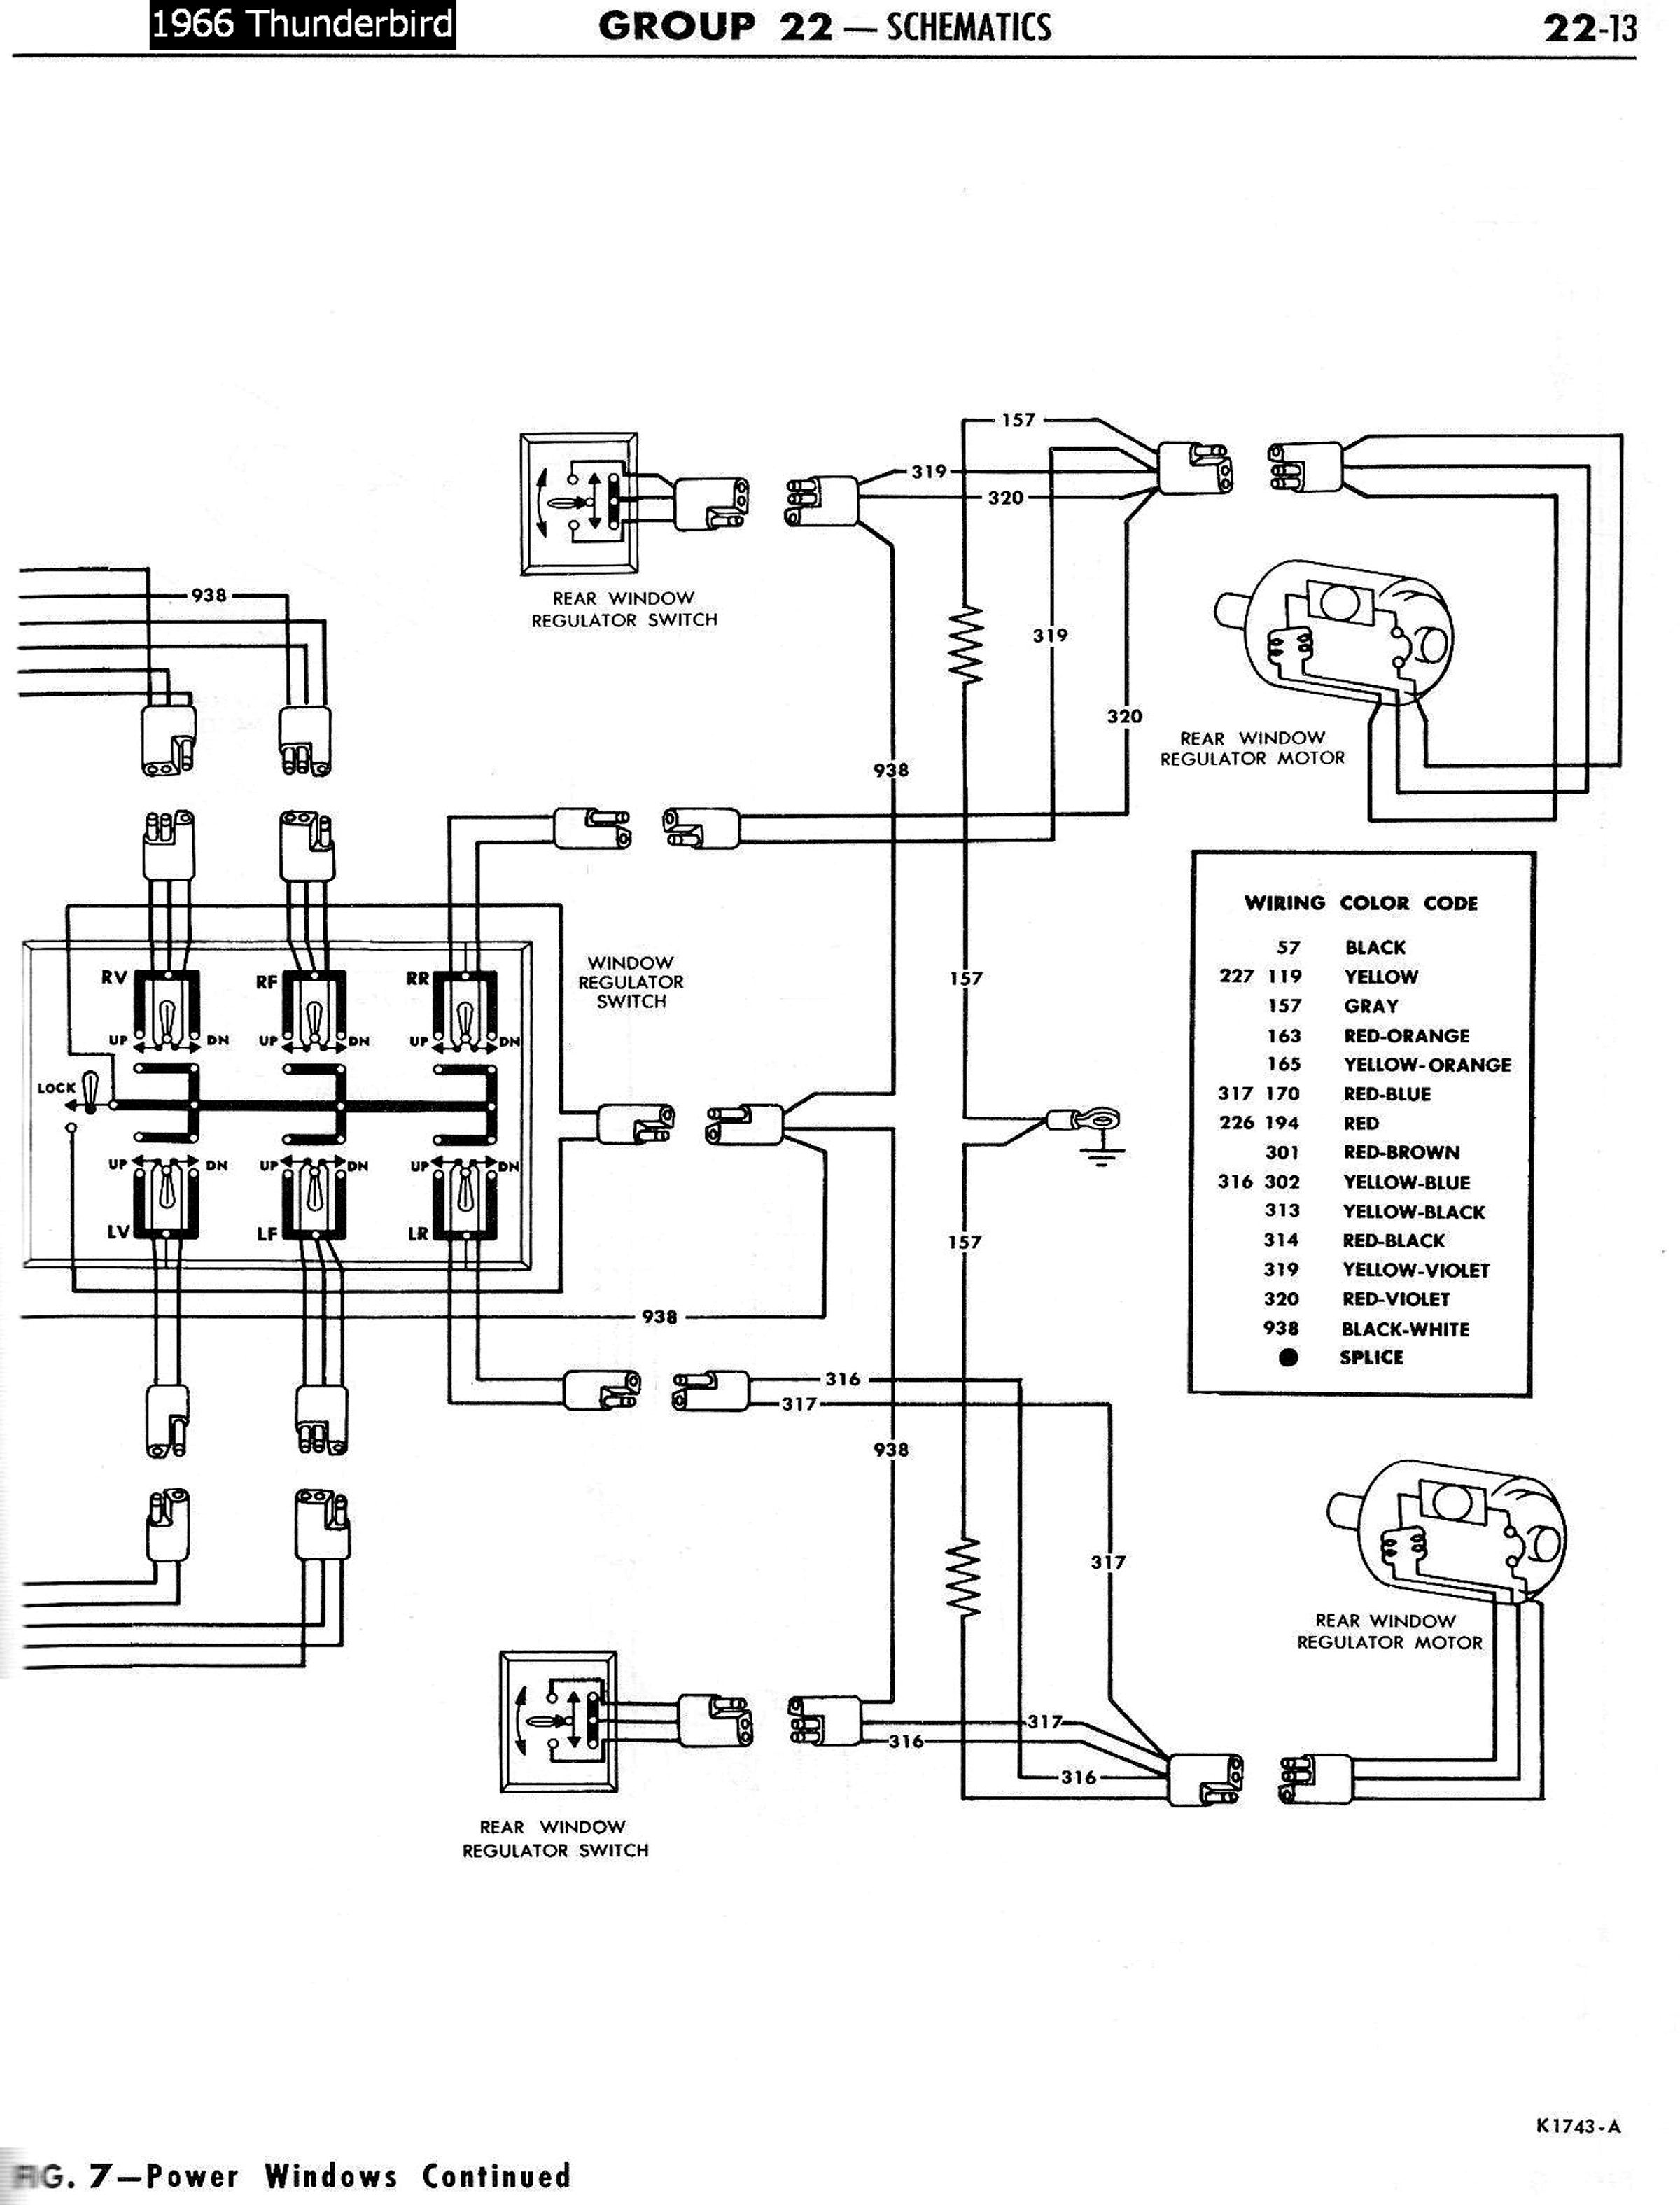 1967 Ford Thunderbird Turn Signal Switch Wiring Diagram Question 1949 Rh 11 17 14 1813weddingbarn Com 1972 1975